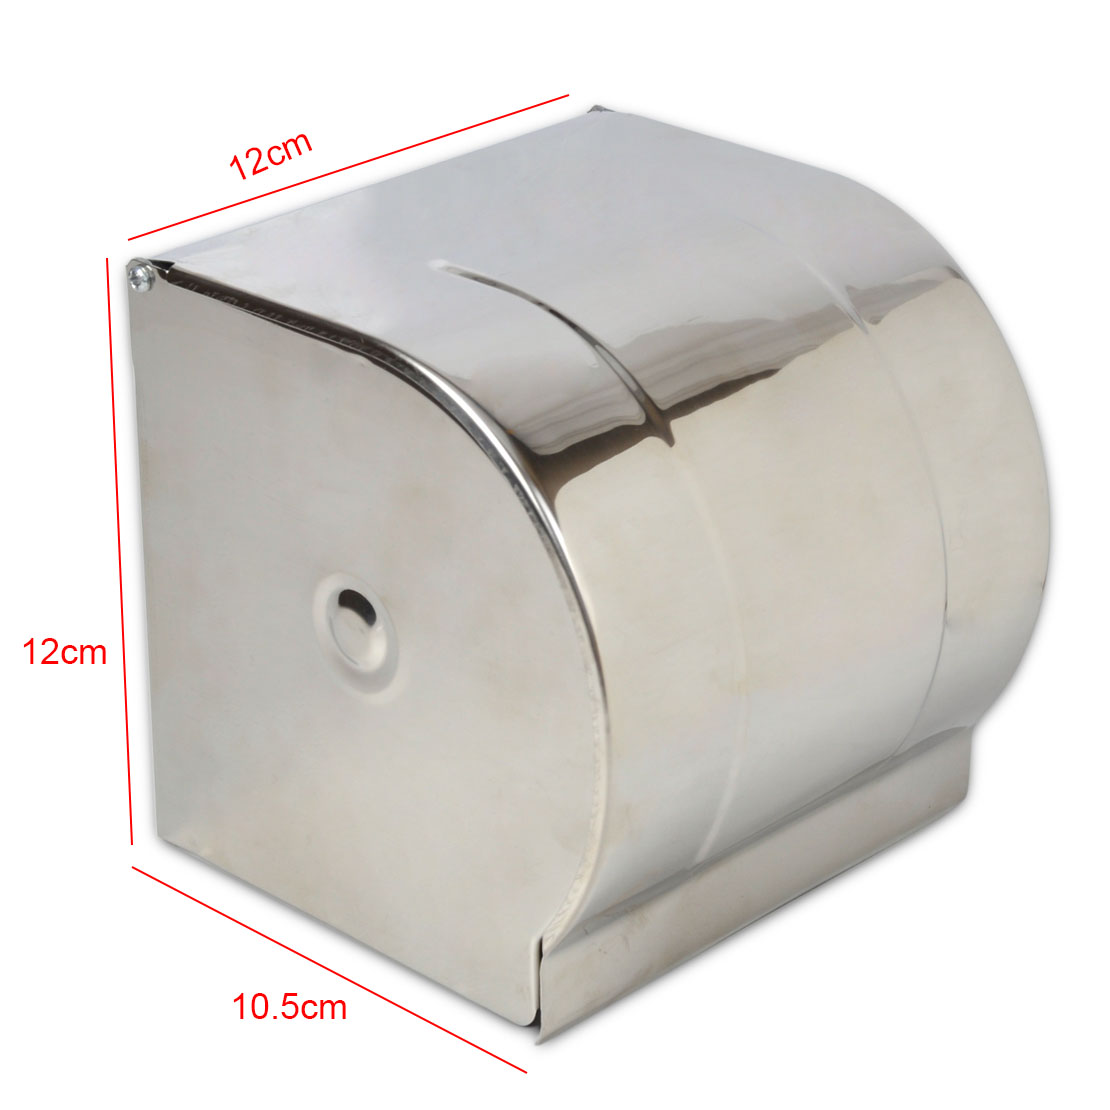 Modern bathroom accessories toilet paper holder roll tissue box wall mounted lazada malaysia - Bathroom accessories toilet paper holders ...